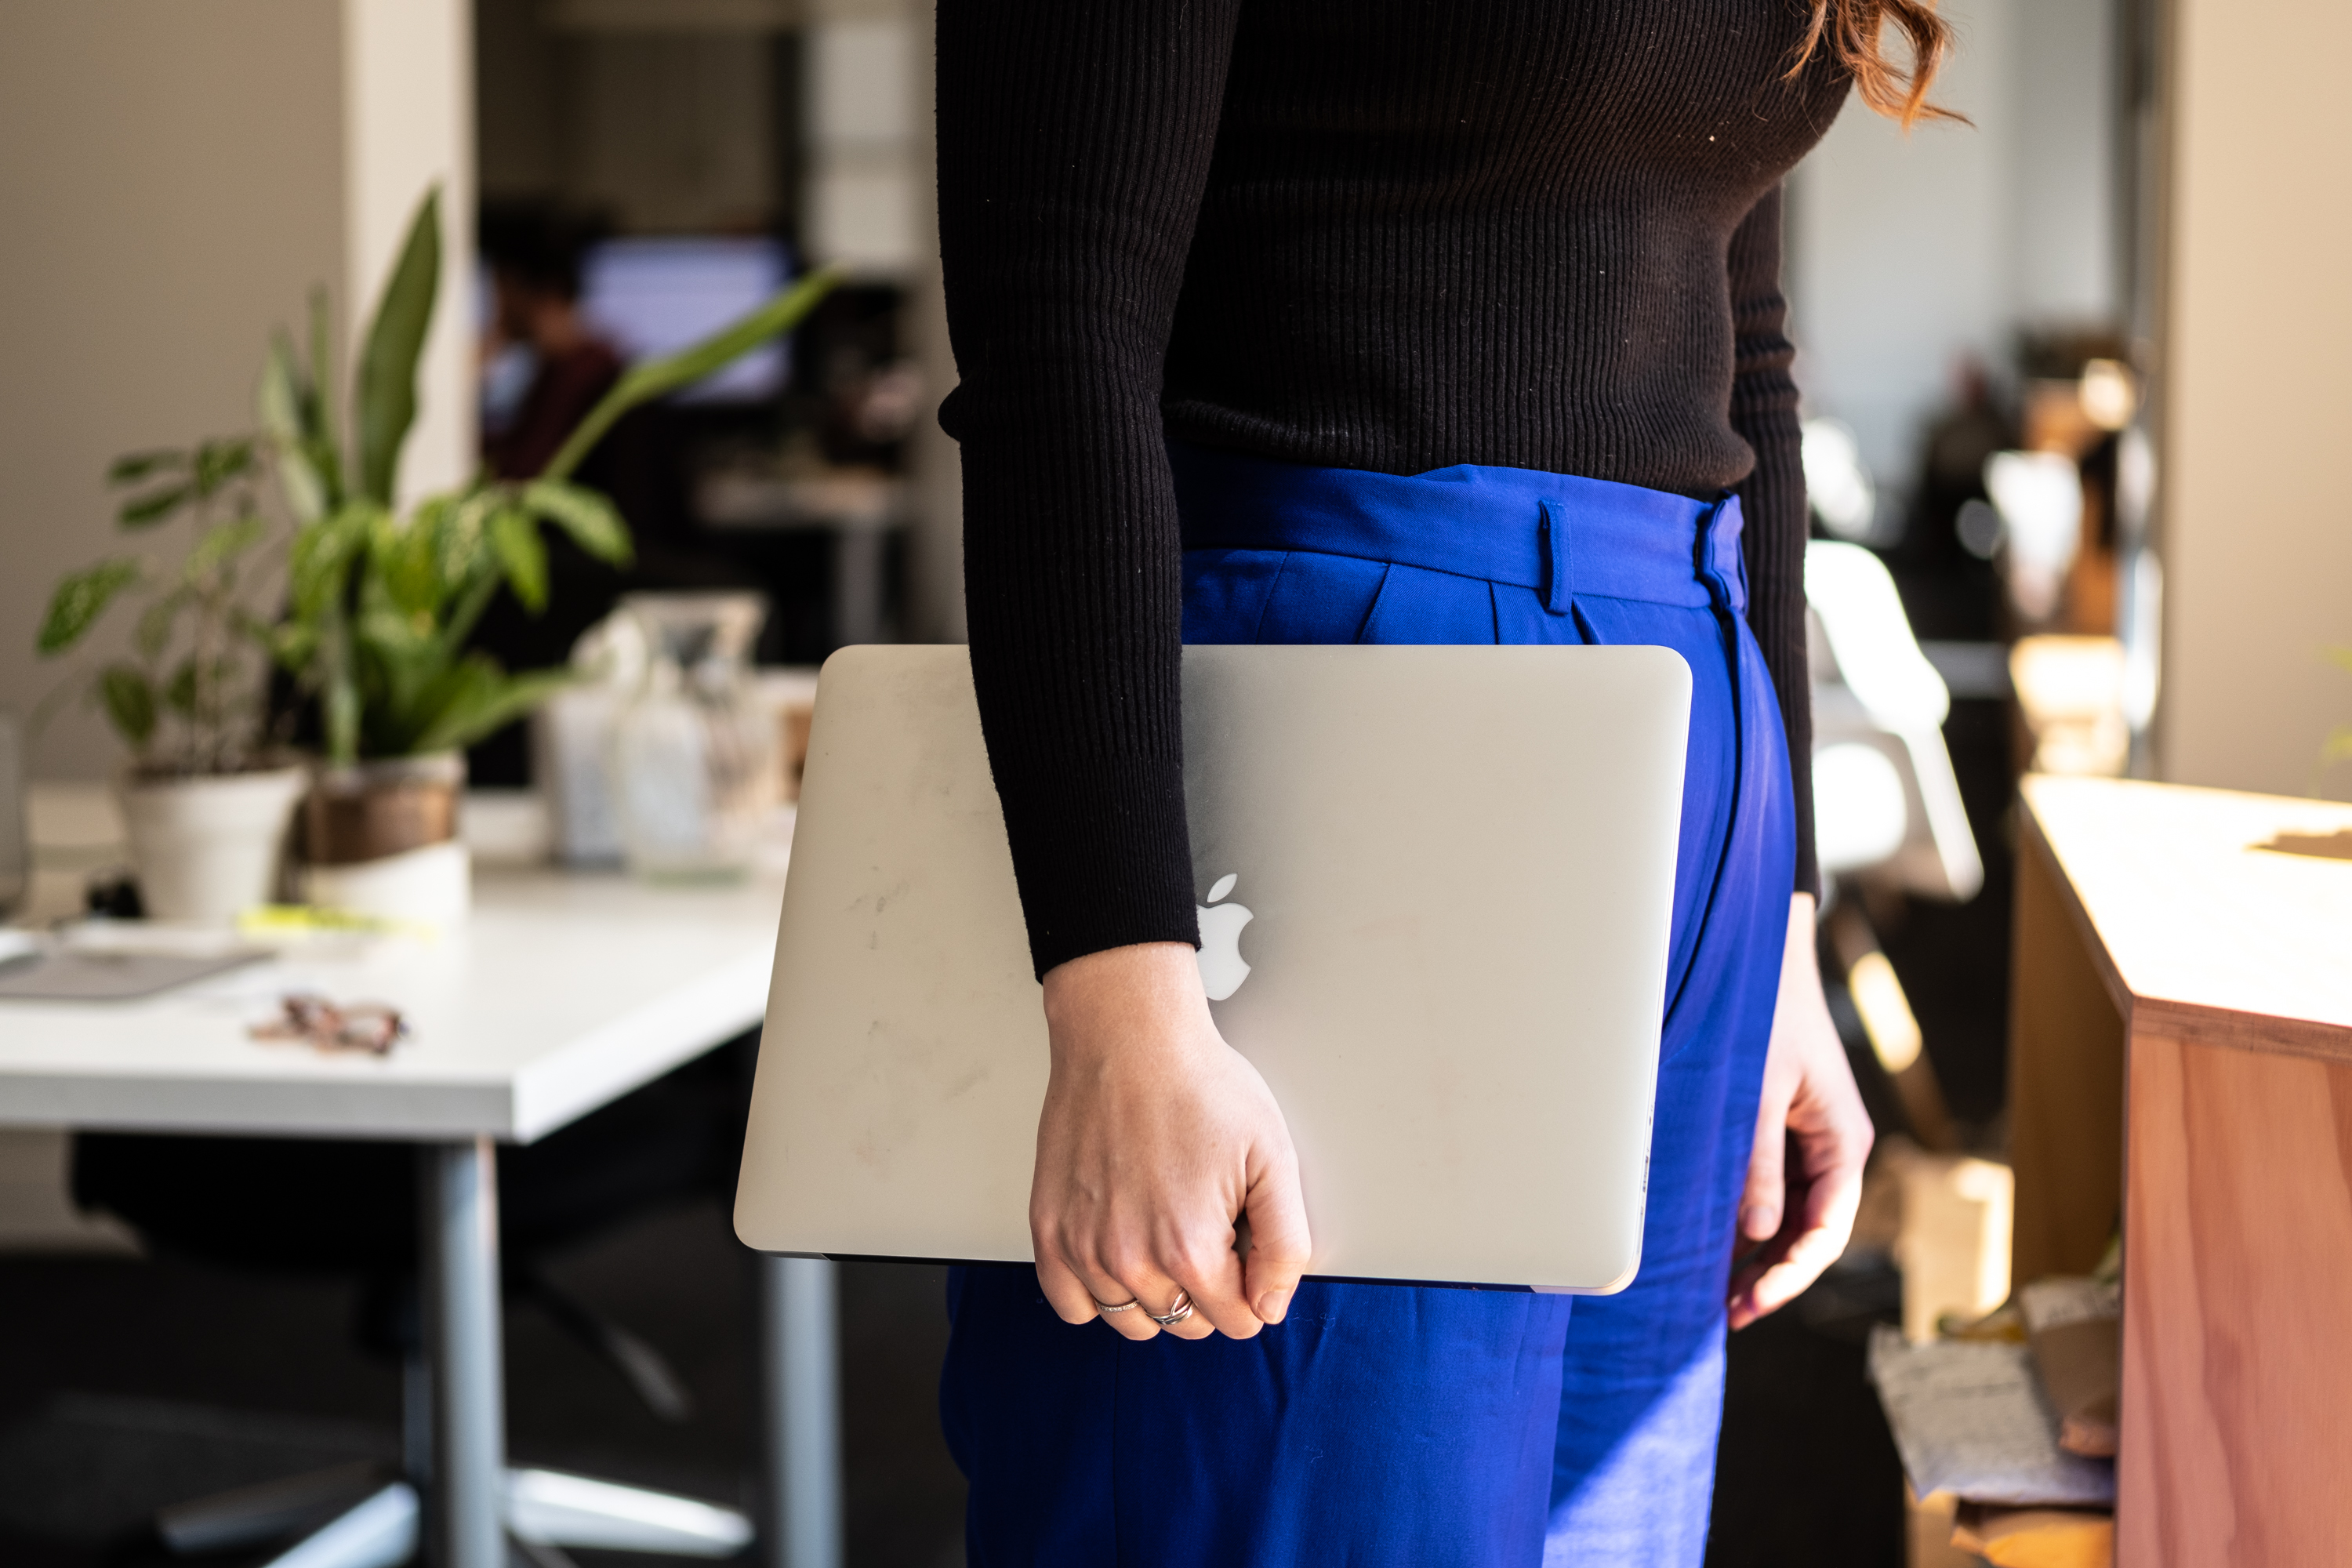 laptop holding positions—the clutch